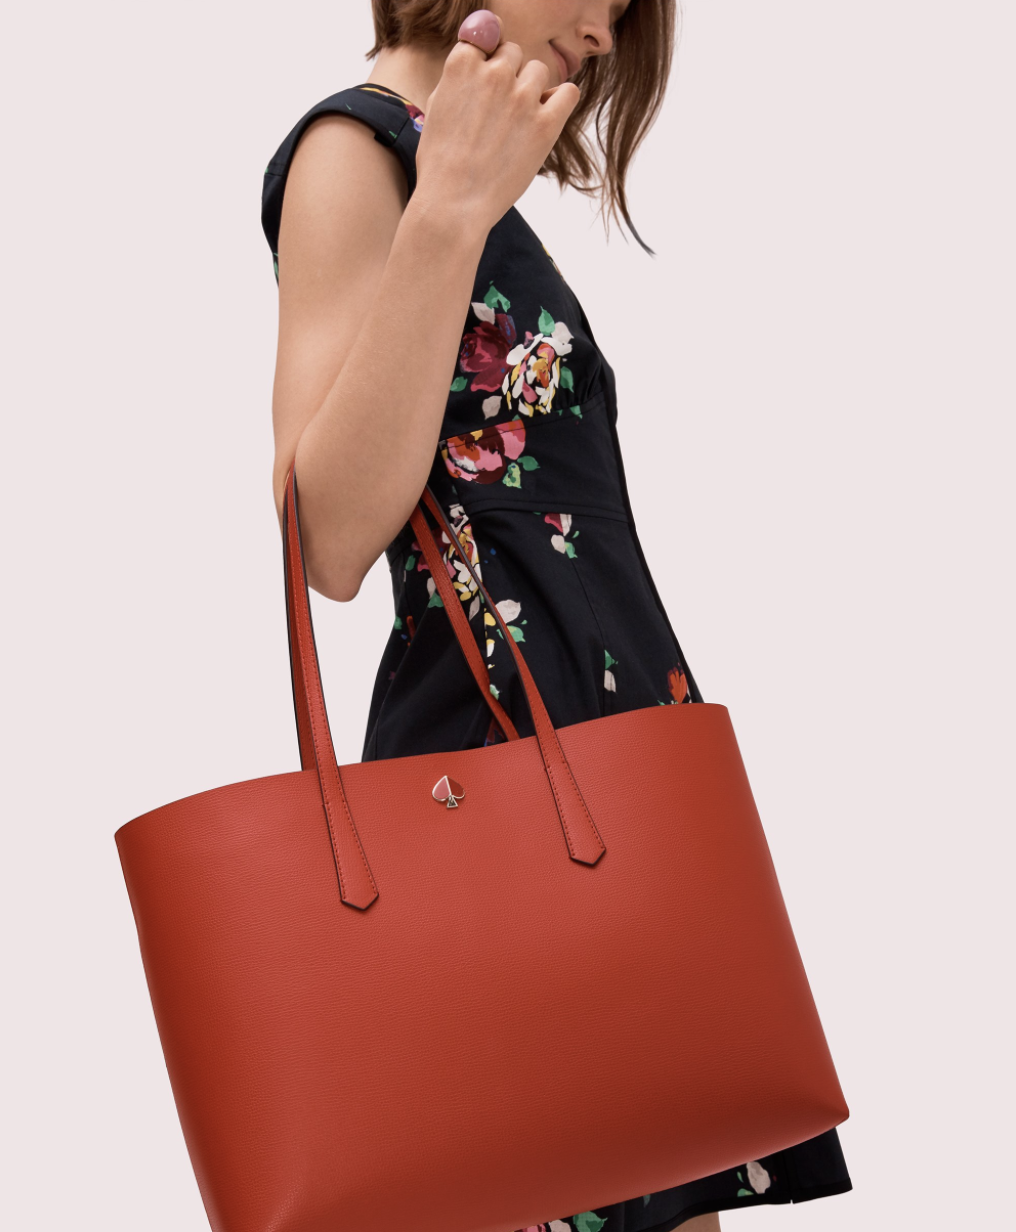 Model holding red tote bag in the crux of her arm